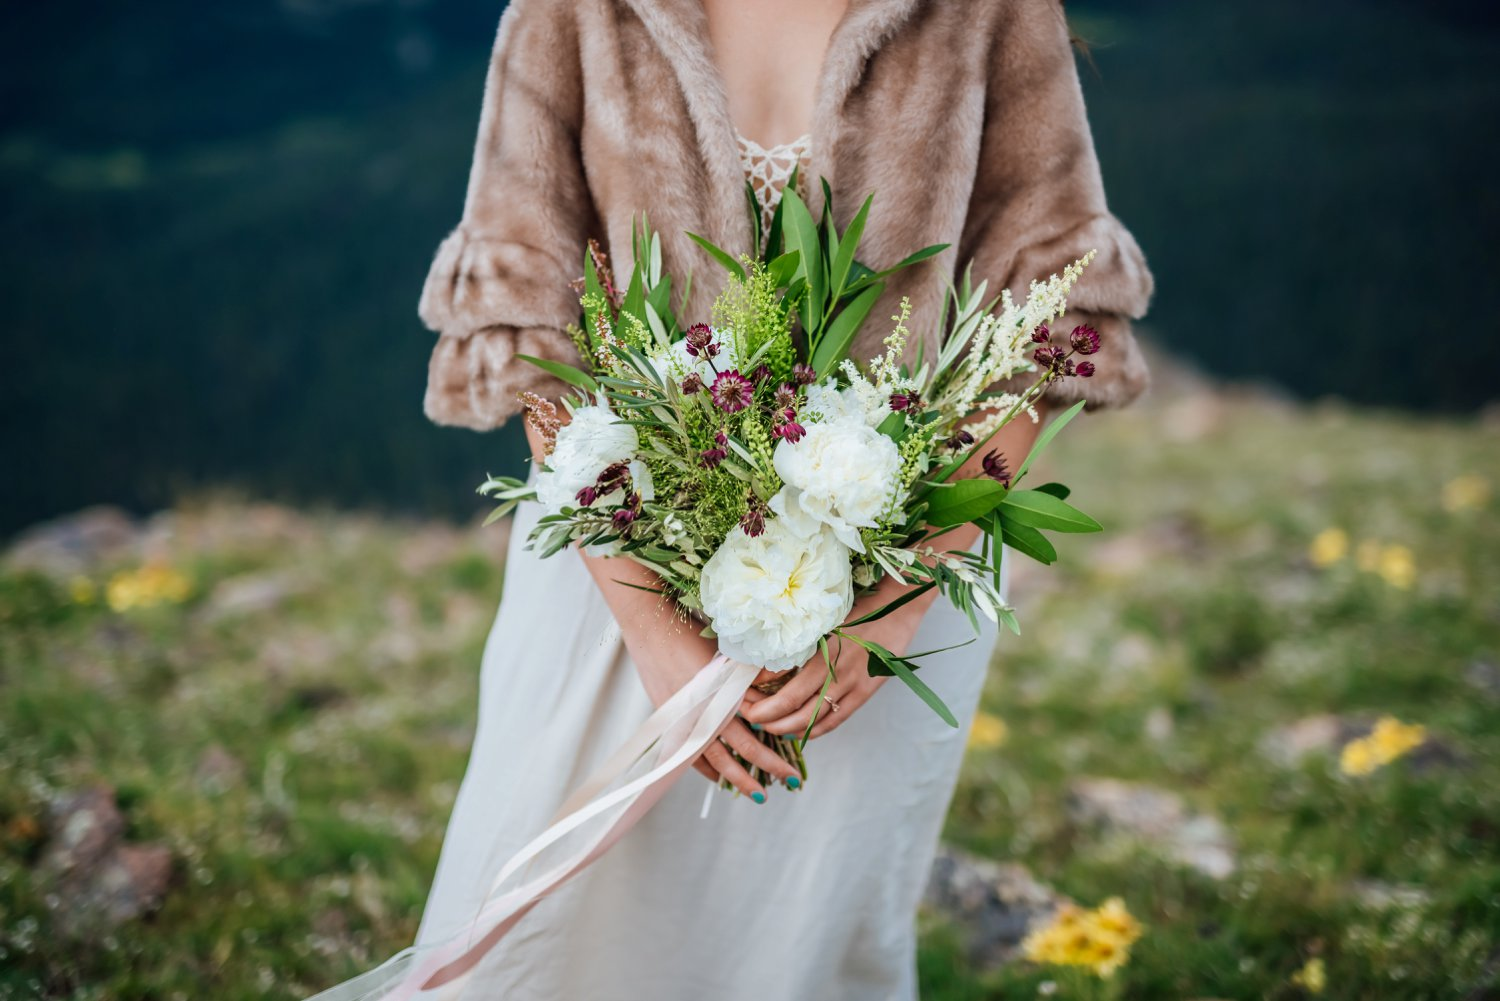 This wildflower bouquet looks so beautiful against her fur coat and the mountain background. Photo by Maddie Mae Photography